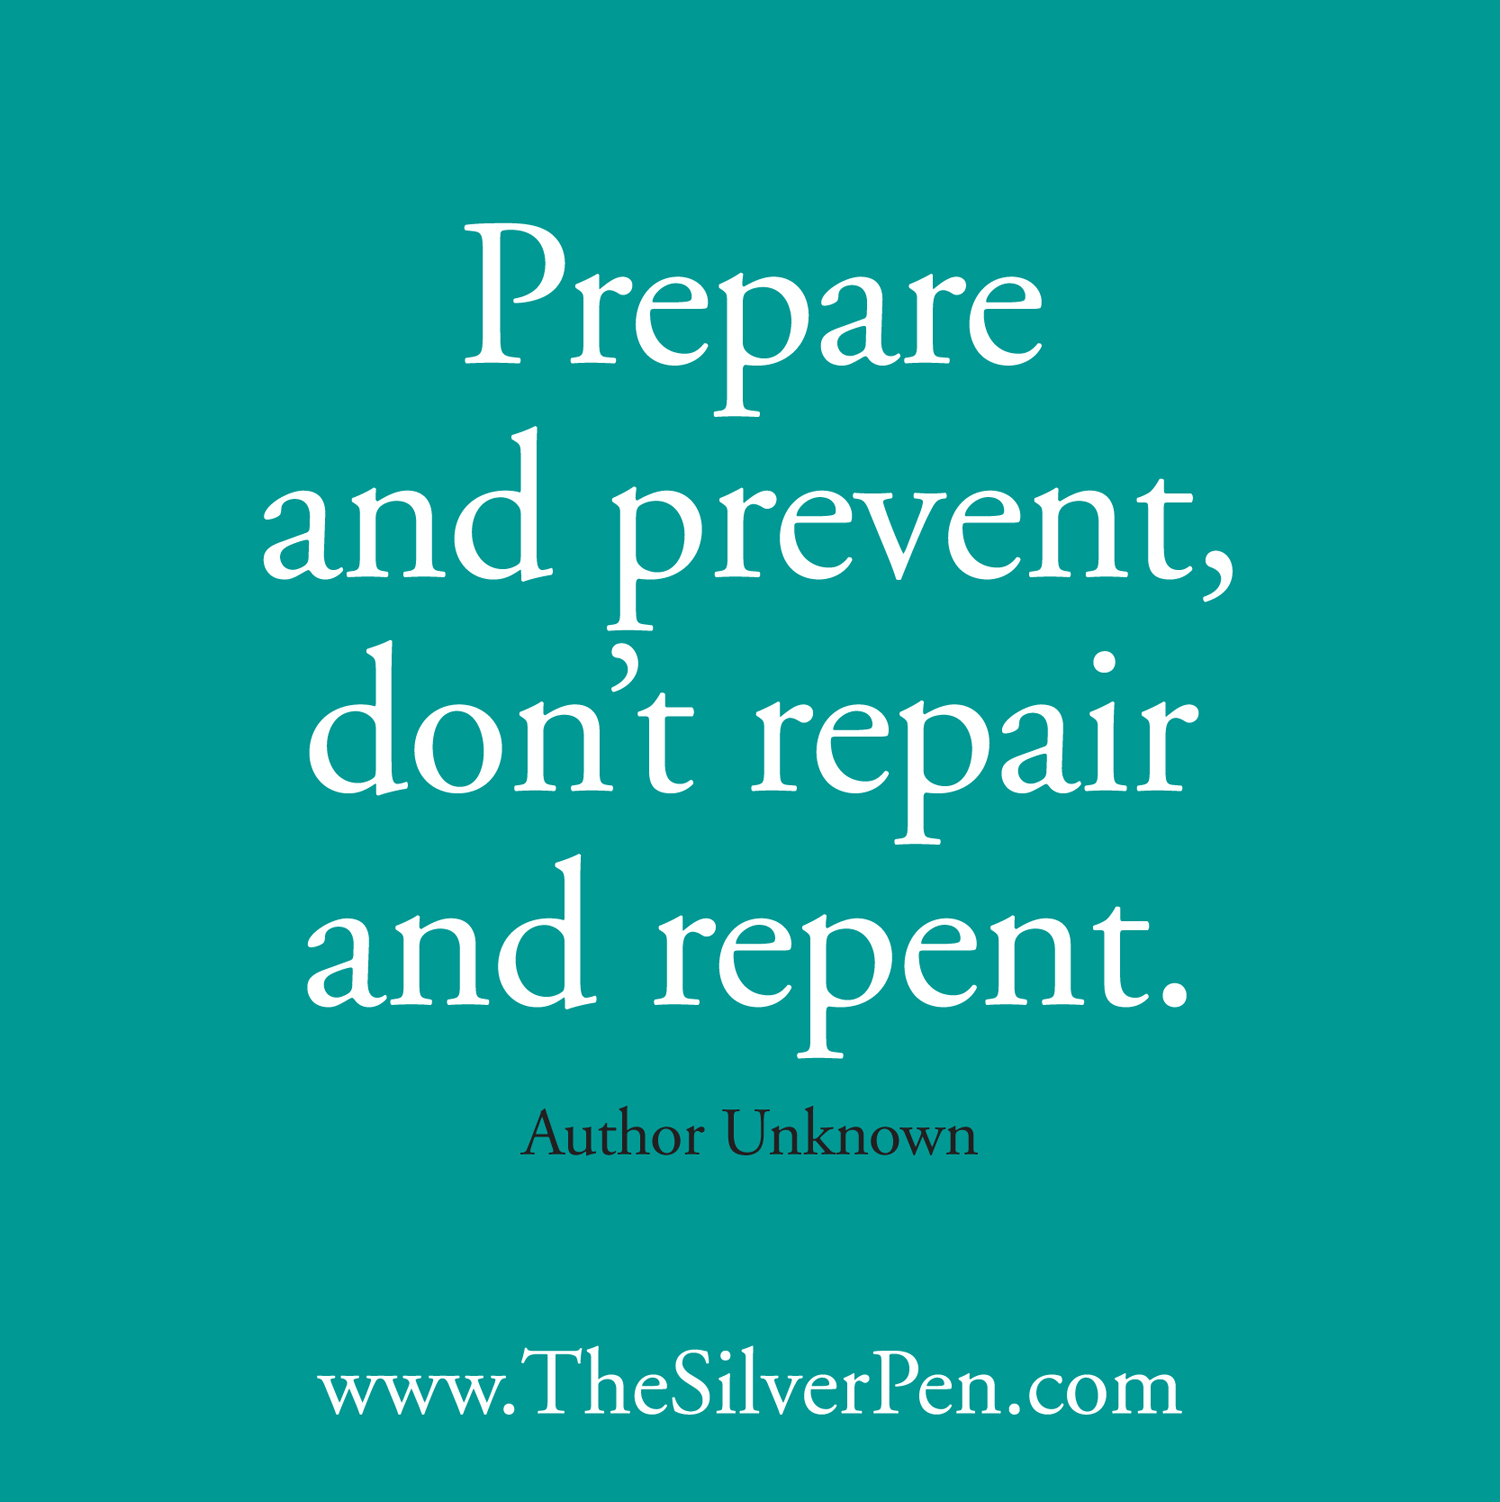 Quotes About Being Prepared Quotes about Being Prepared (83 quotes) Quotes About Being Prepared